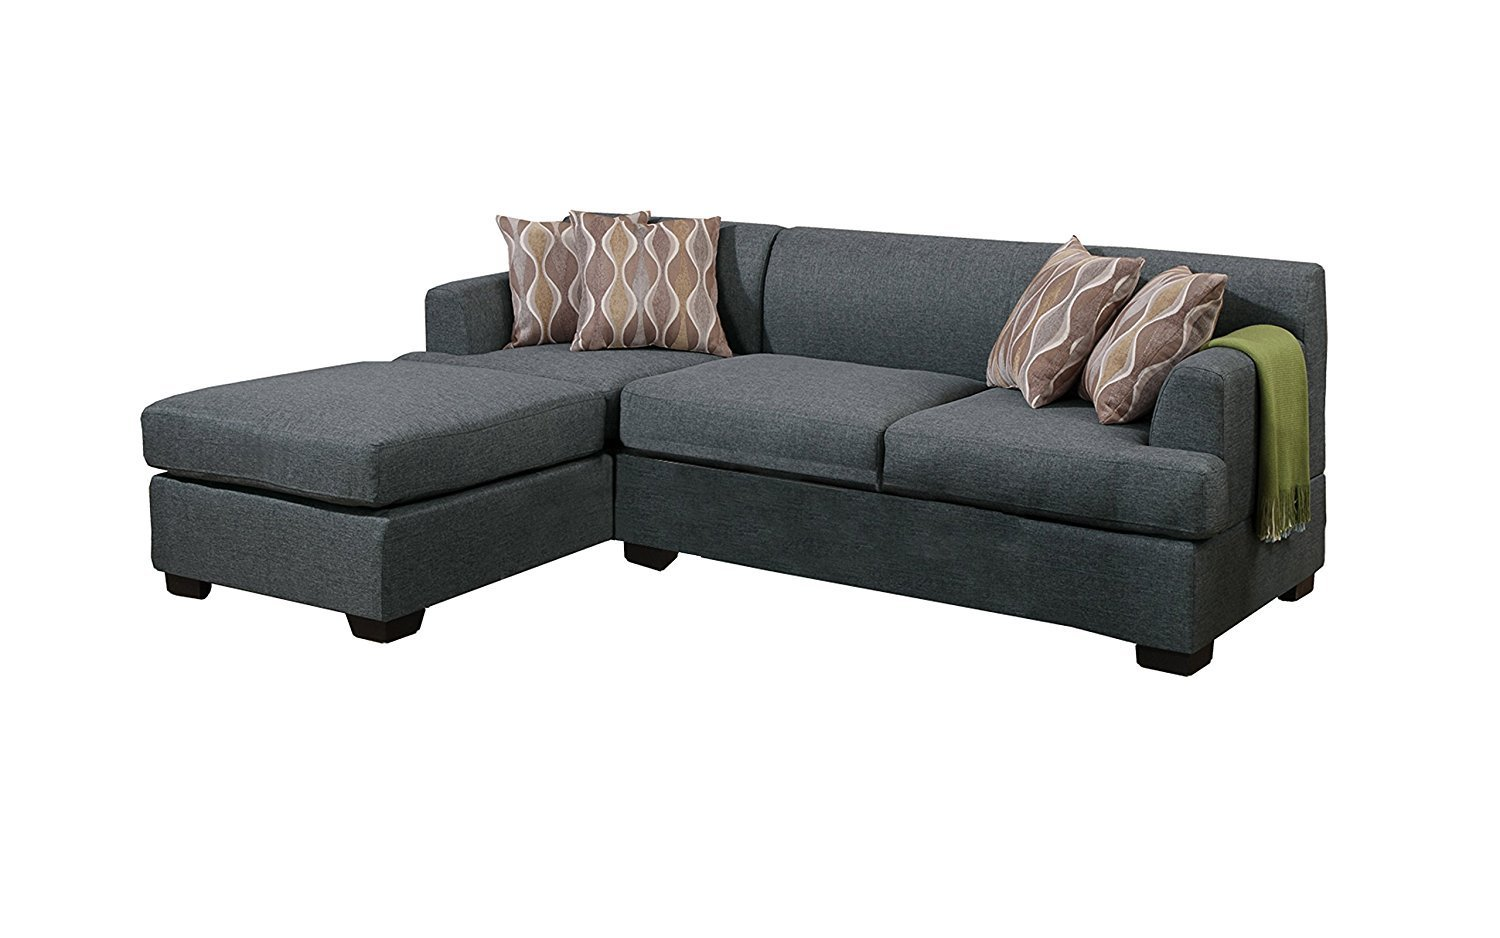 sectional sofa purchase e joy floor chair home essential couch furniture design